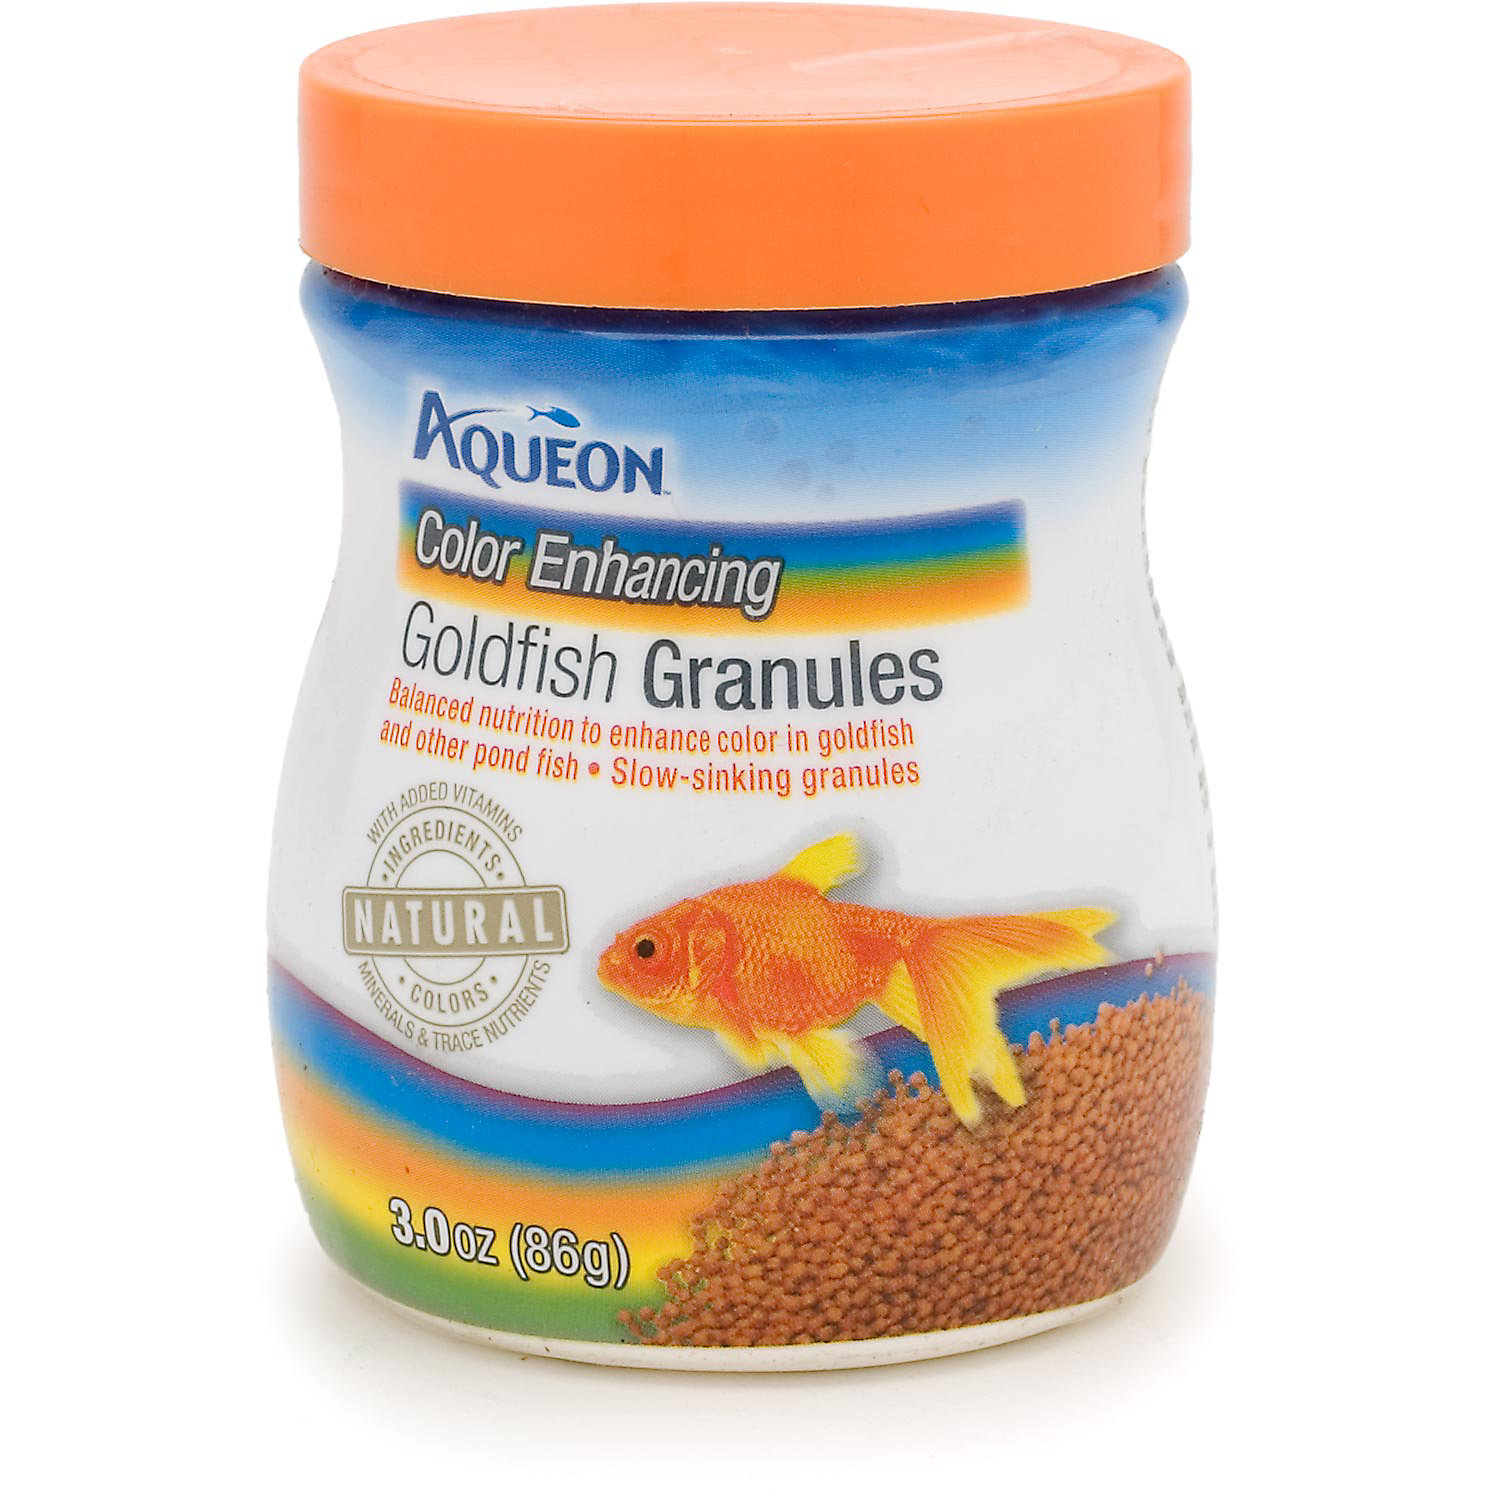 Aqueon Color Enhancing Goldfish Granules 3 Oz.